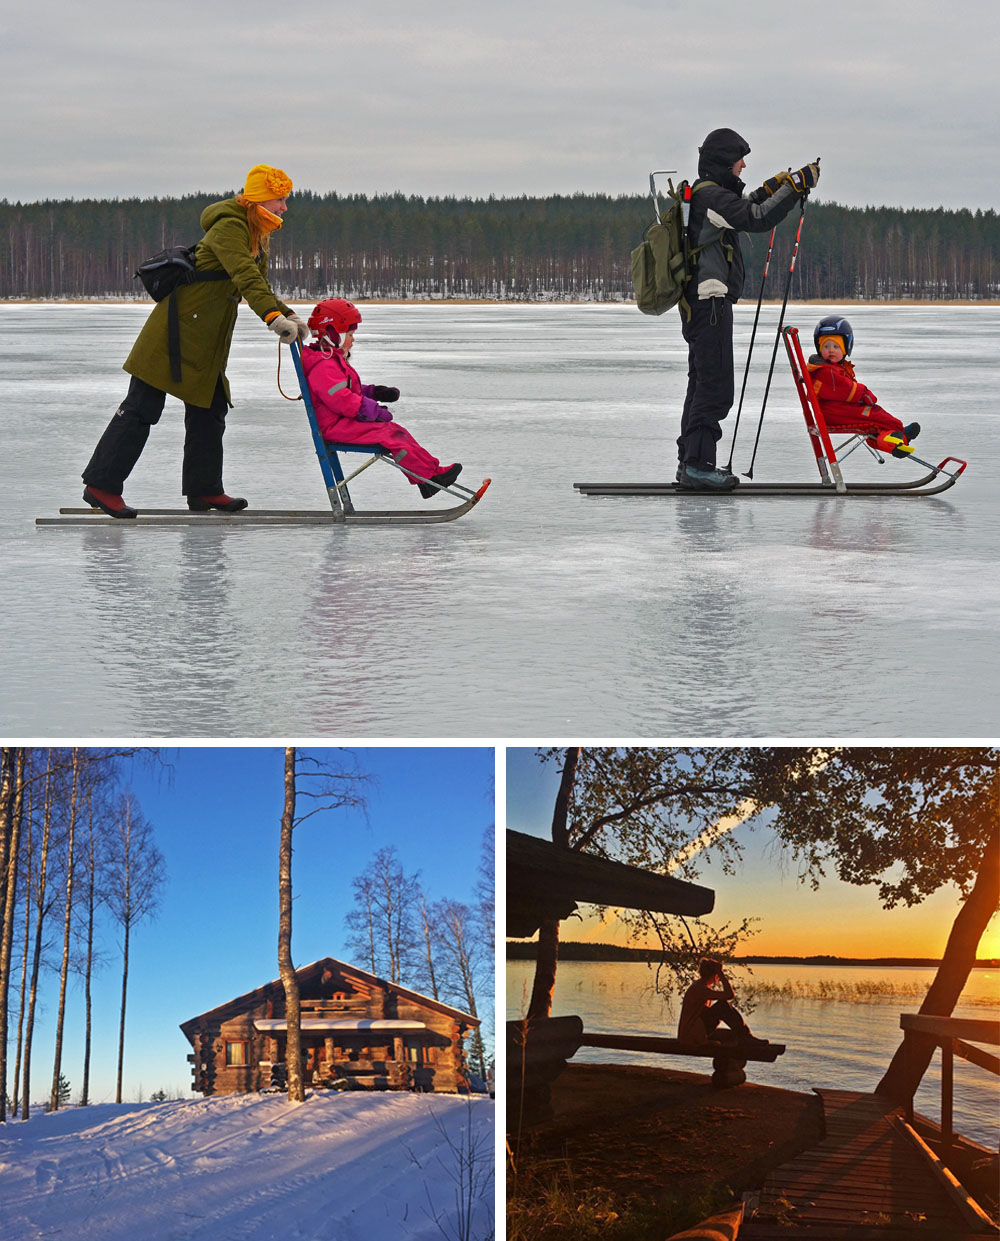 SaimaaLife - Lake Puruvesi and Finnish Lakeland - Outdoot Activities for All Seasons